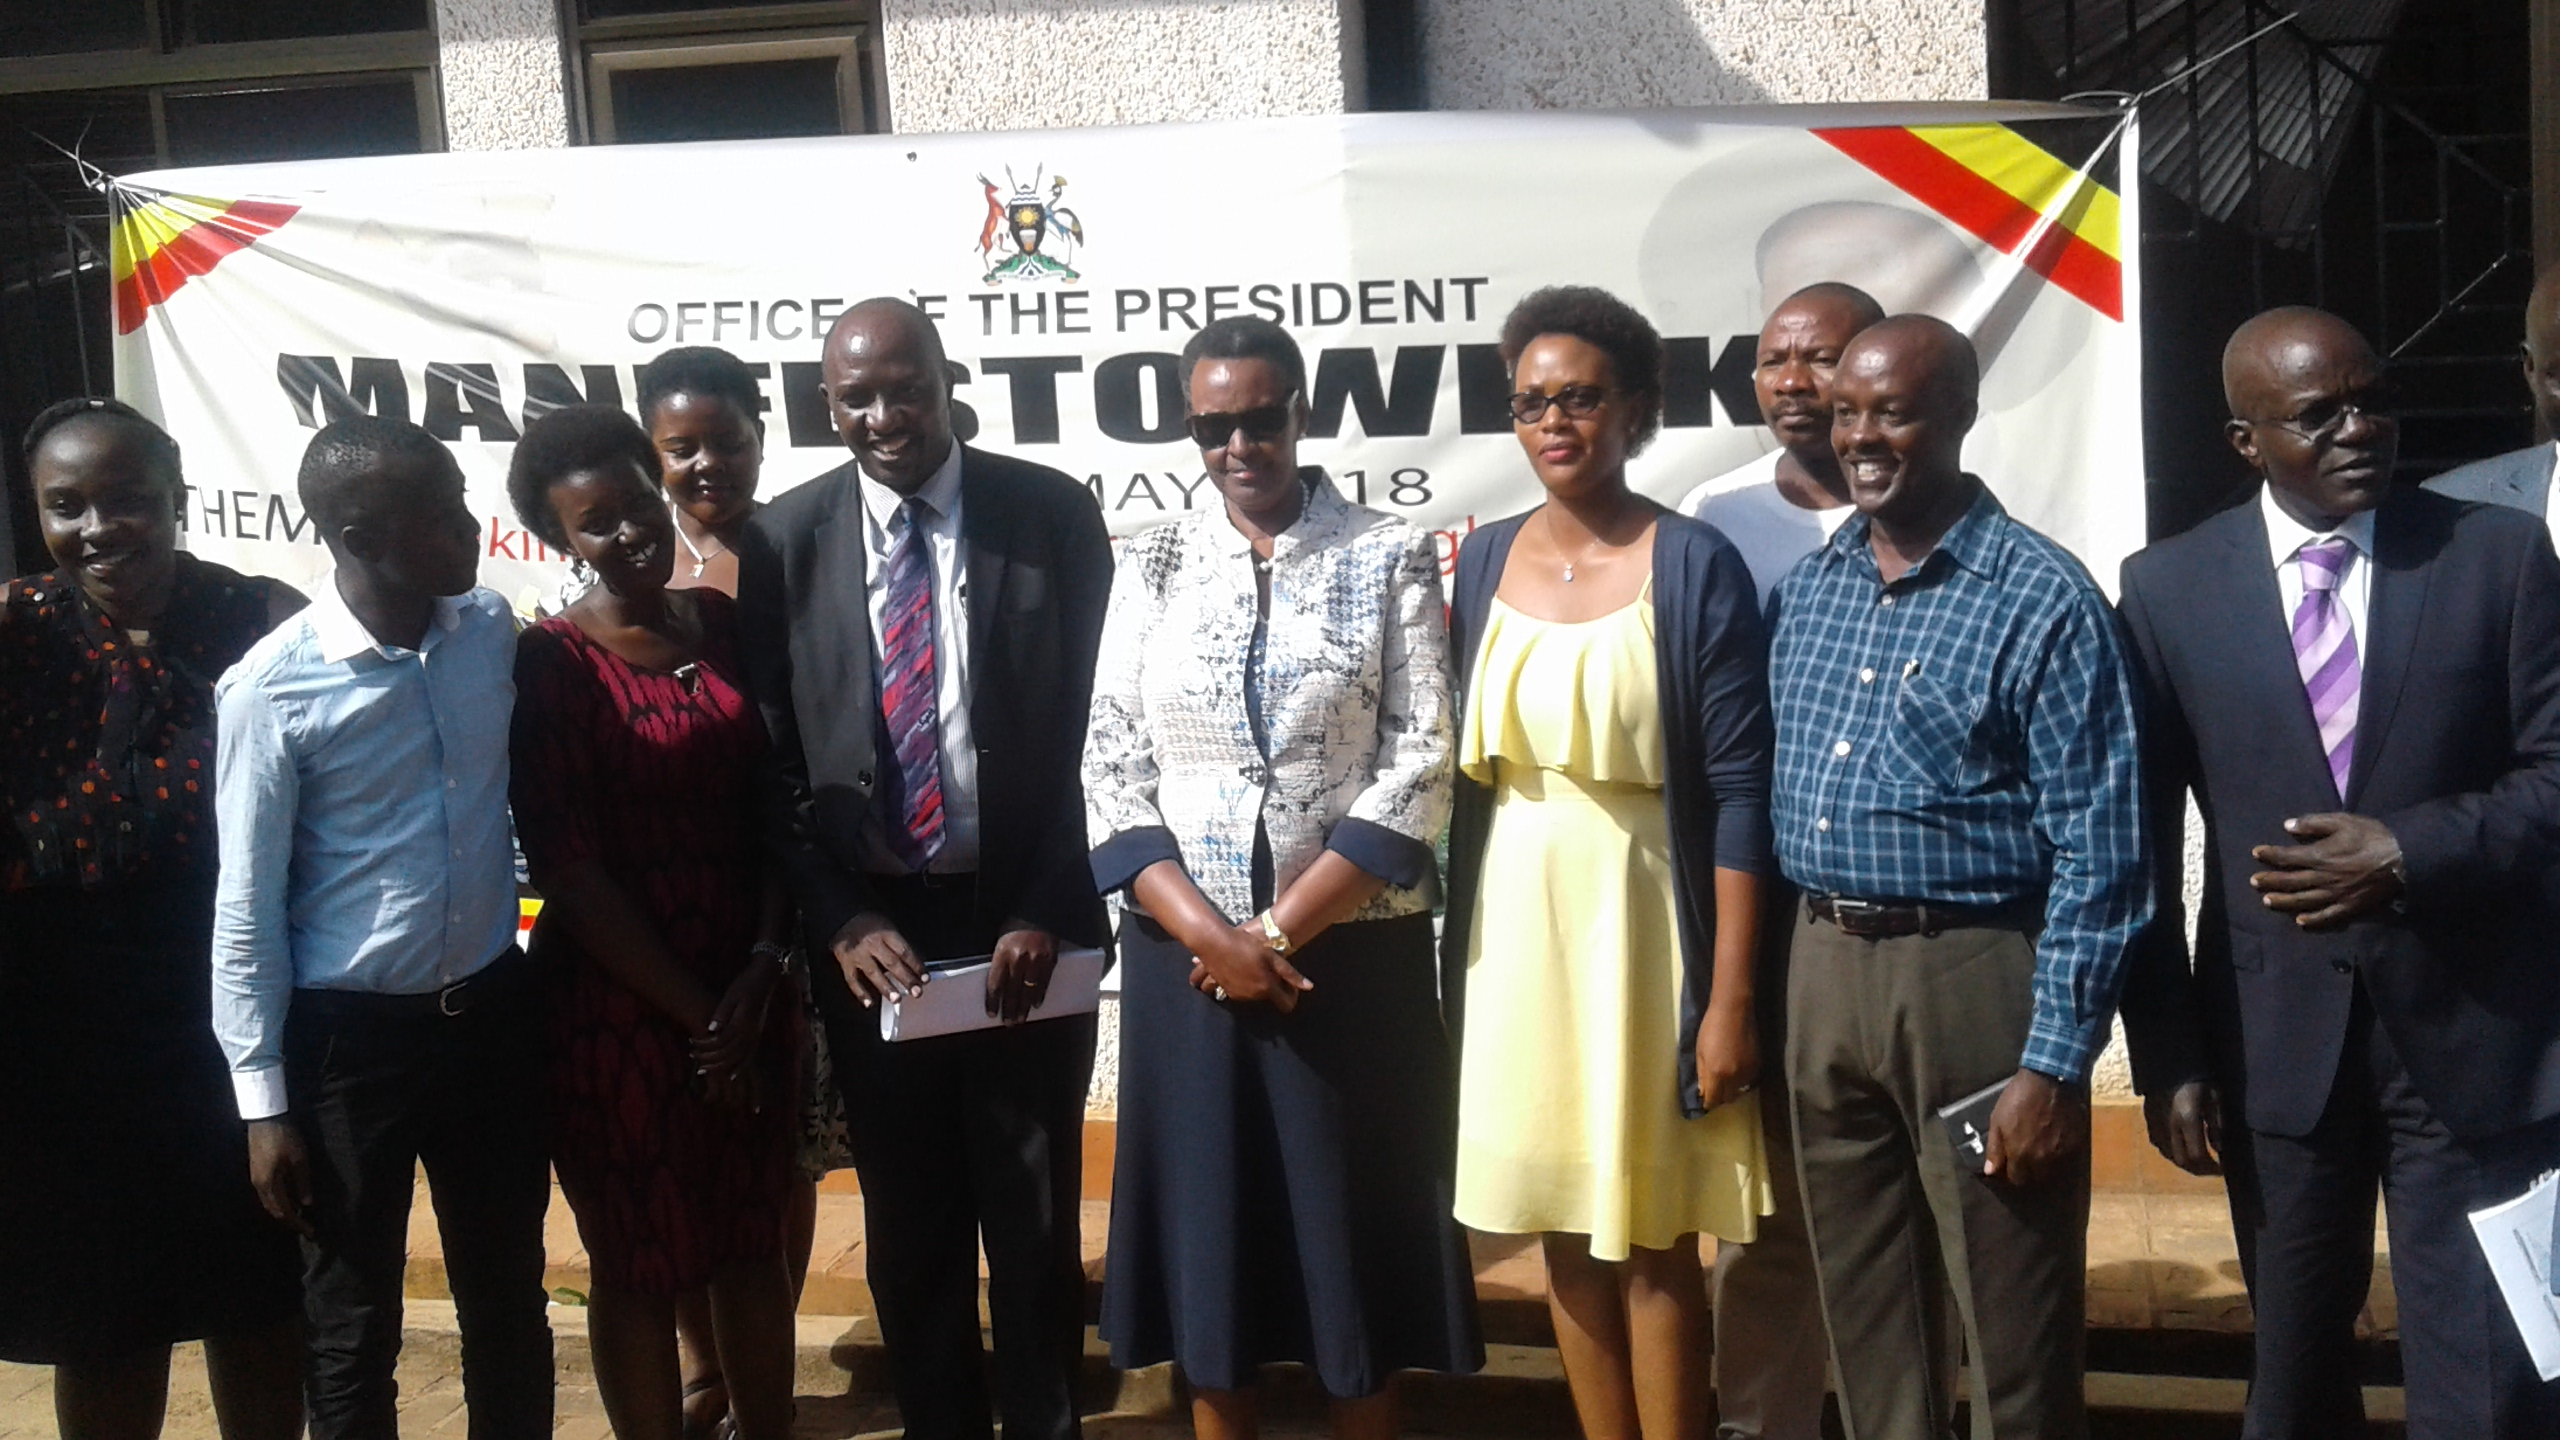 Education Minister Janet Museveni poses with officials at the Uganda Media Centre.  To her immediate right is NRM Manifesto Implementation Unit director Willis Bashasha.